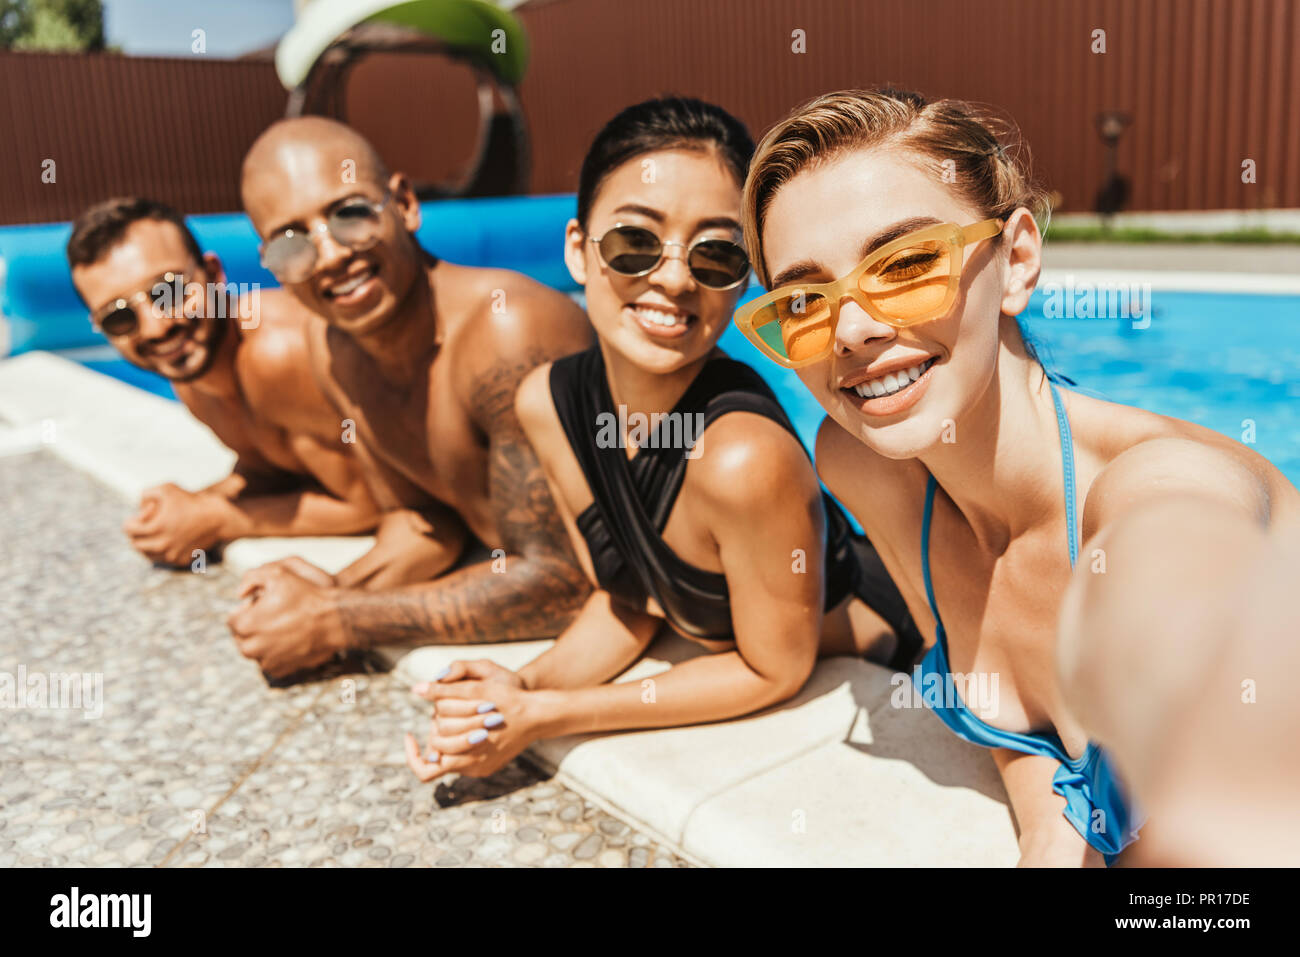 d0b03d9b85 young smiling multicultural people in swimsuits and sunglasses posing in  swimming pool - Stock Image